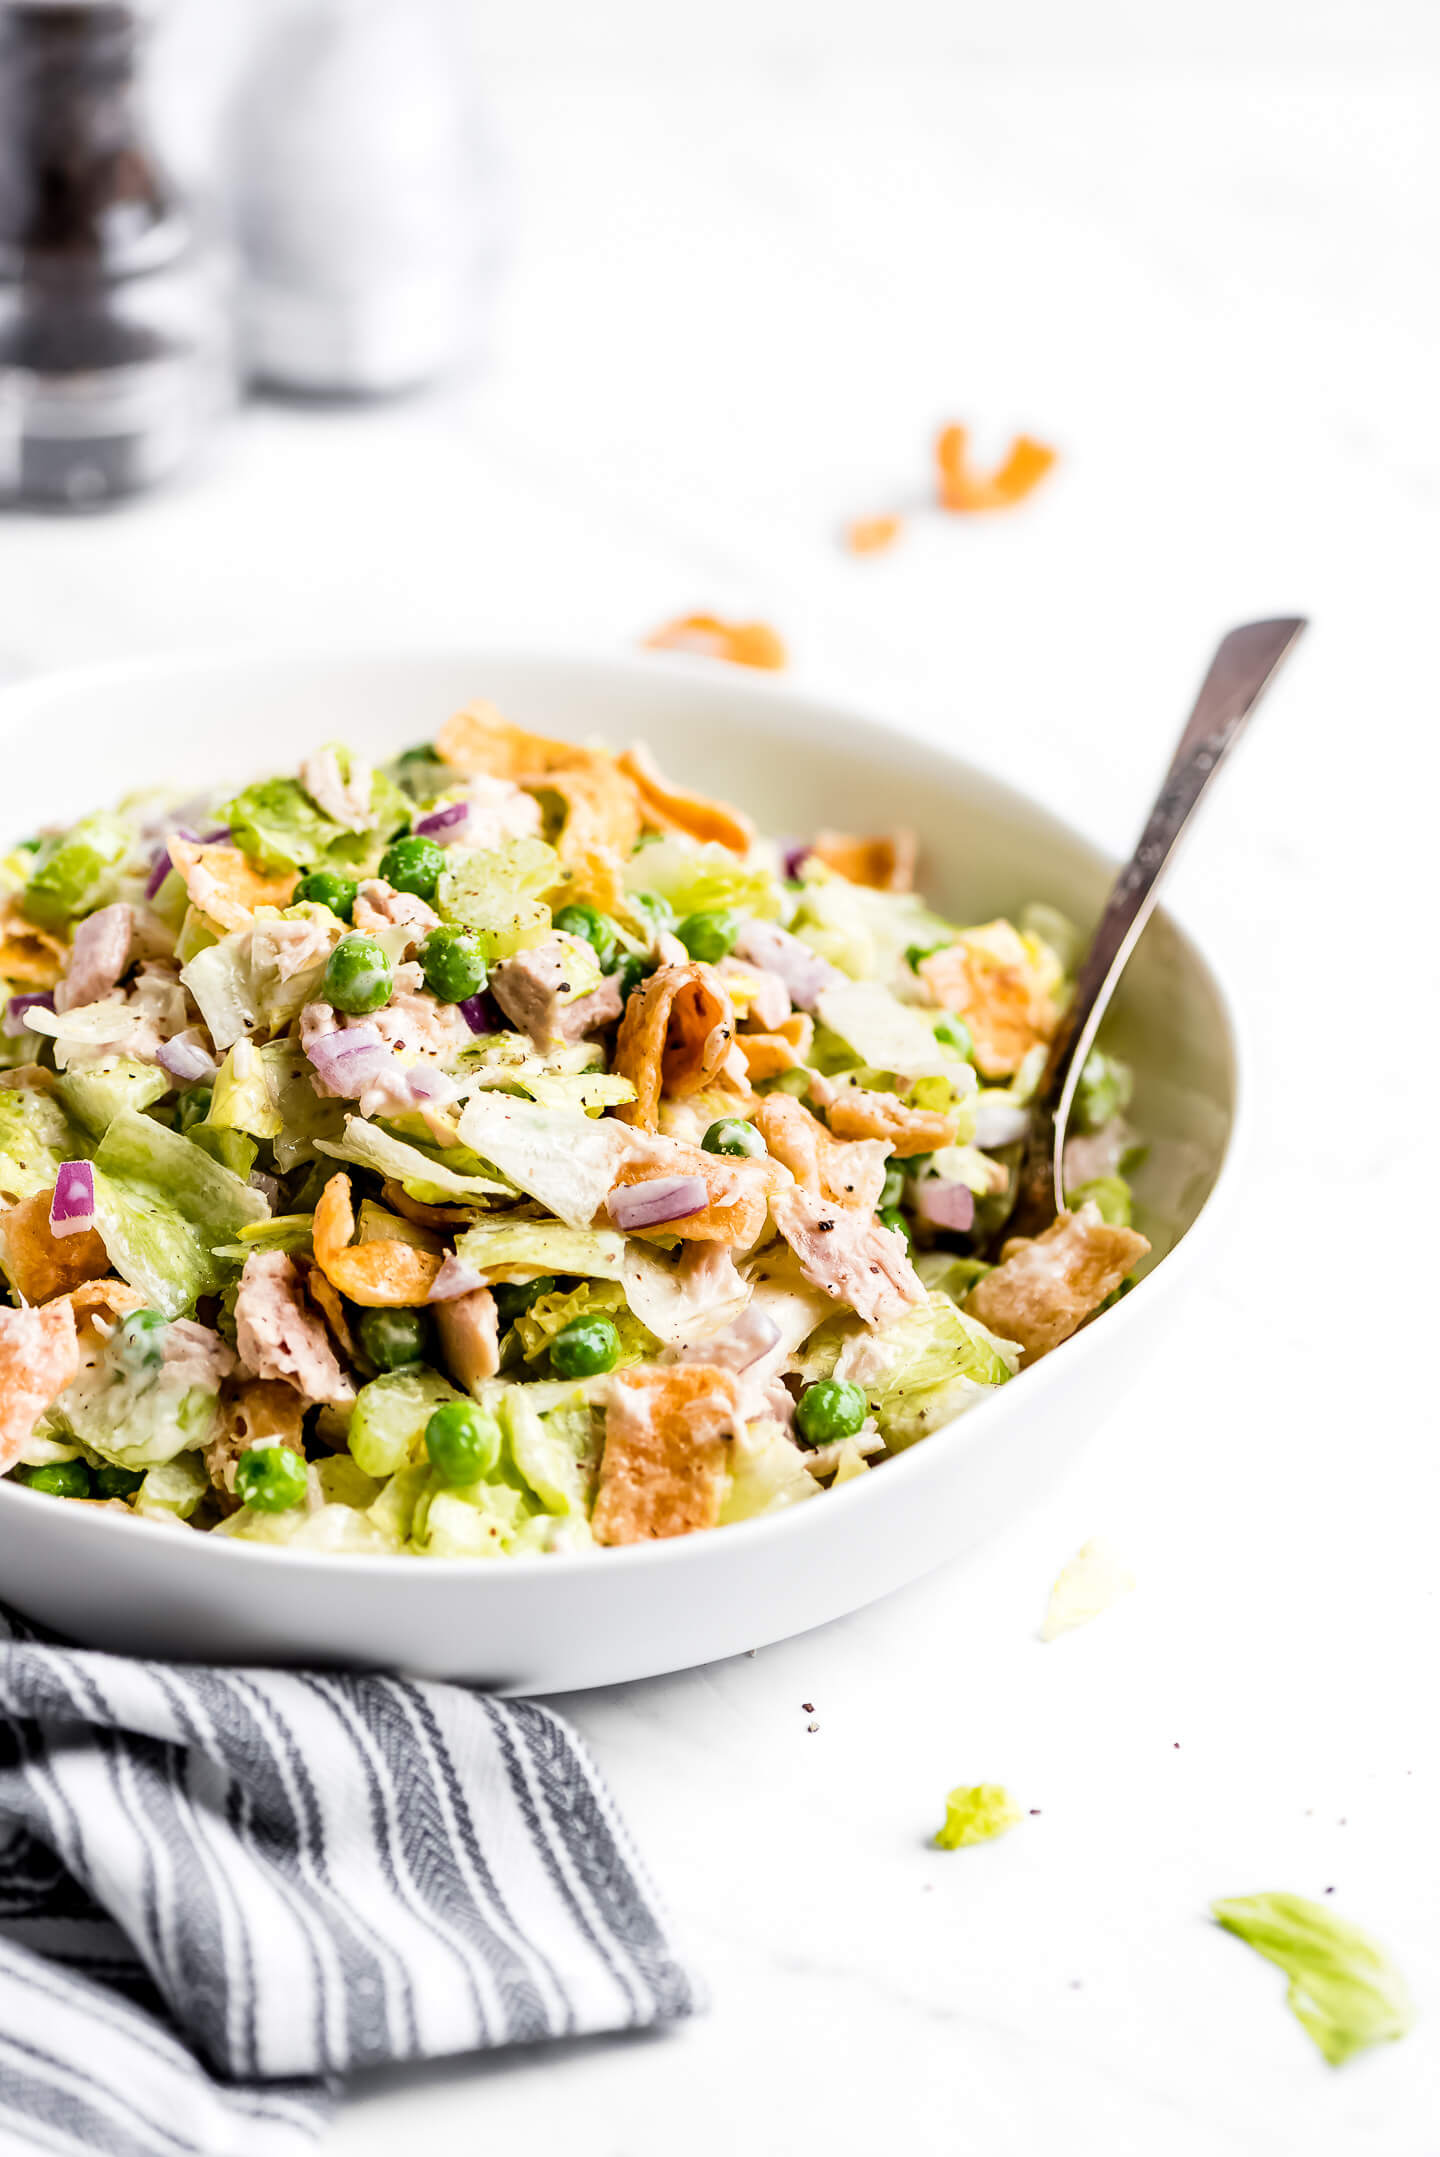 Tuna Salad in a large shallow bowl with a fork in the side.